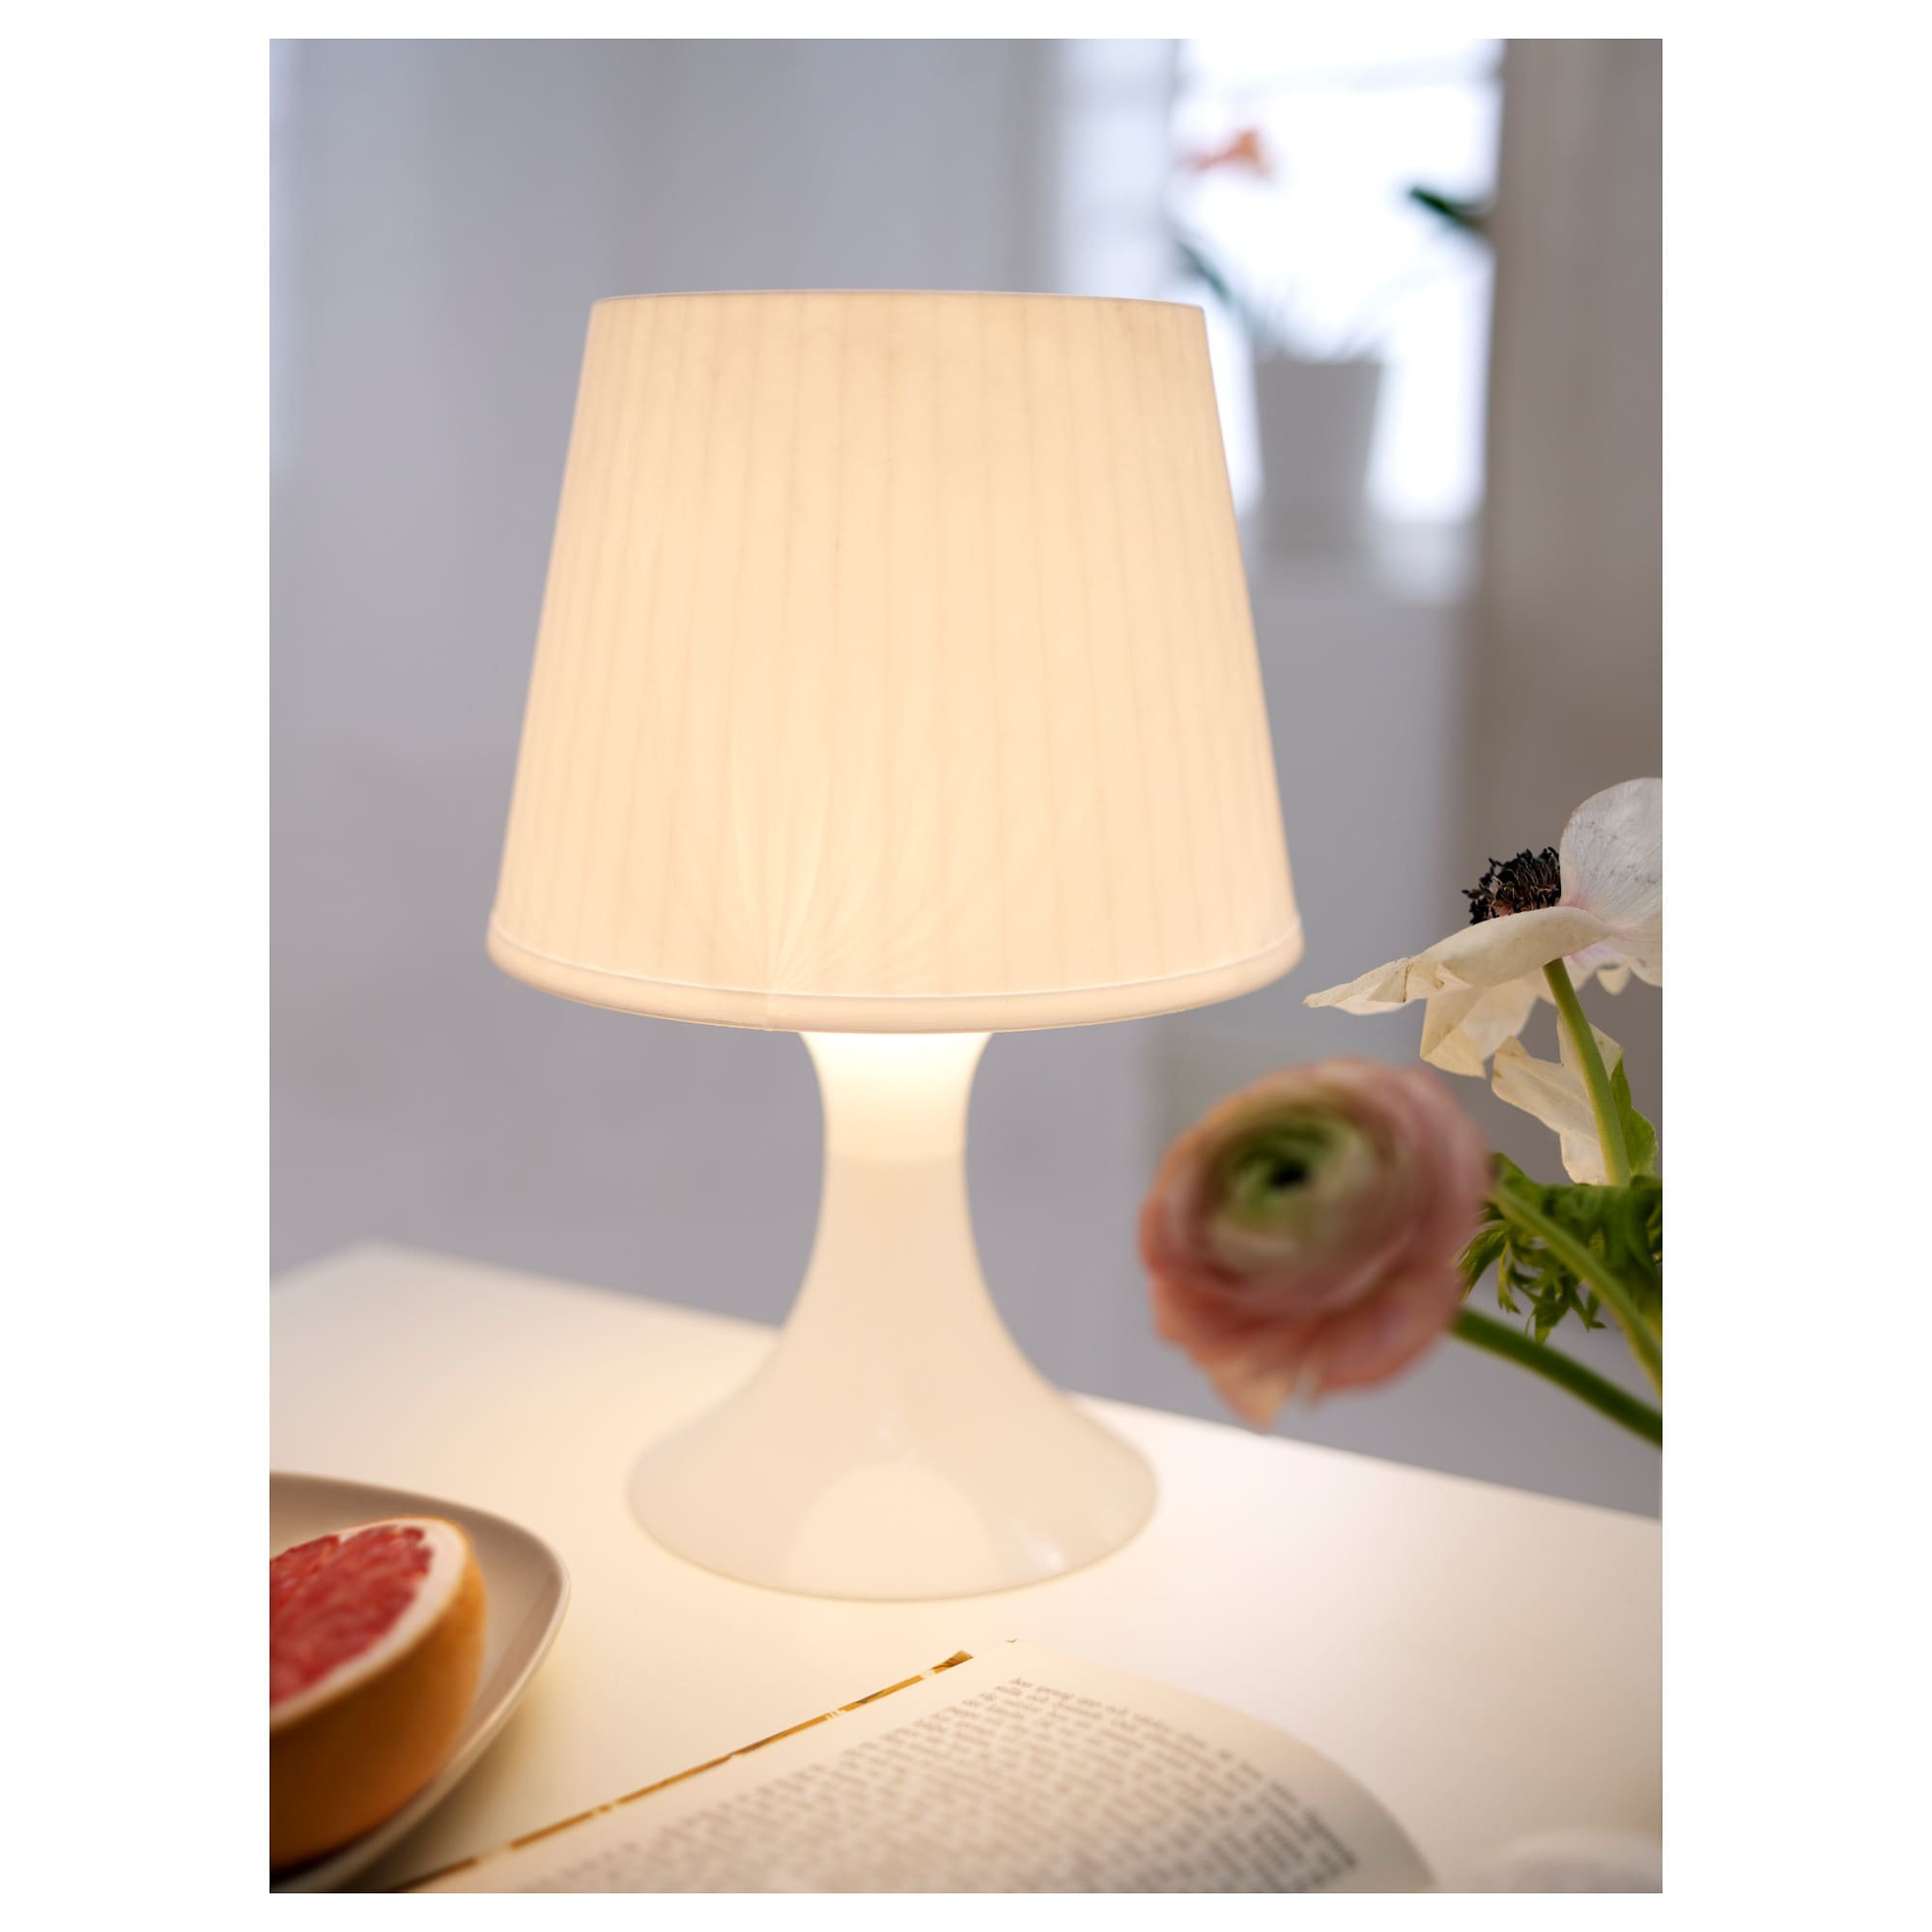 Best ideas about Ikea Desk Lamp . Save or Pin LAMPAN Table lamp White IKEA Now.